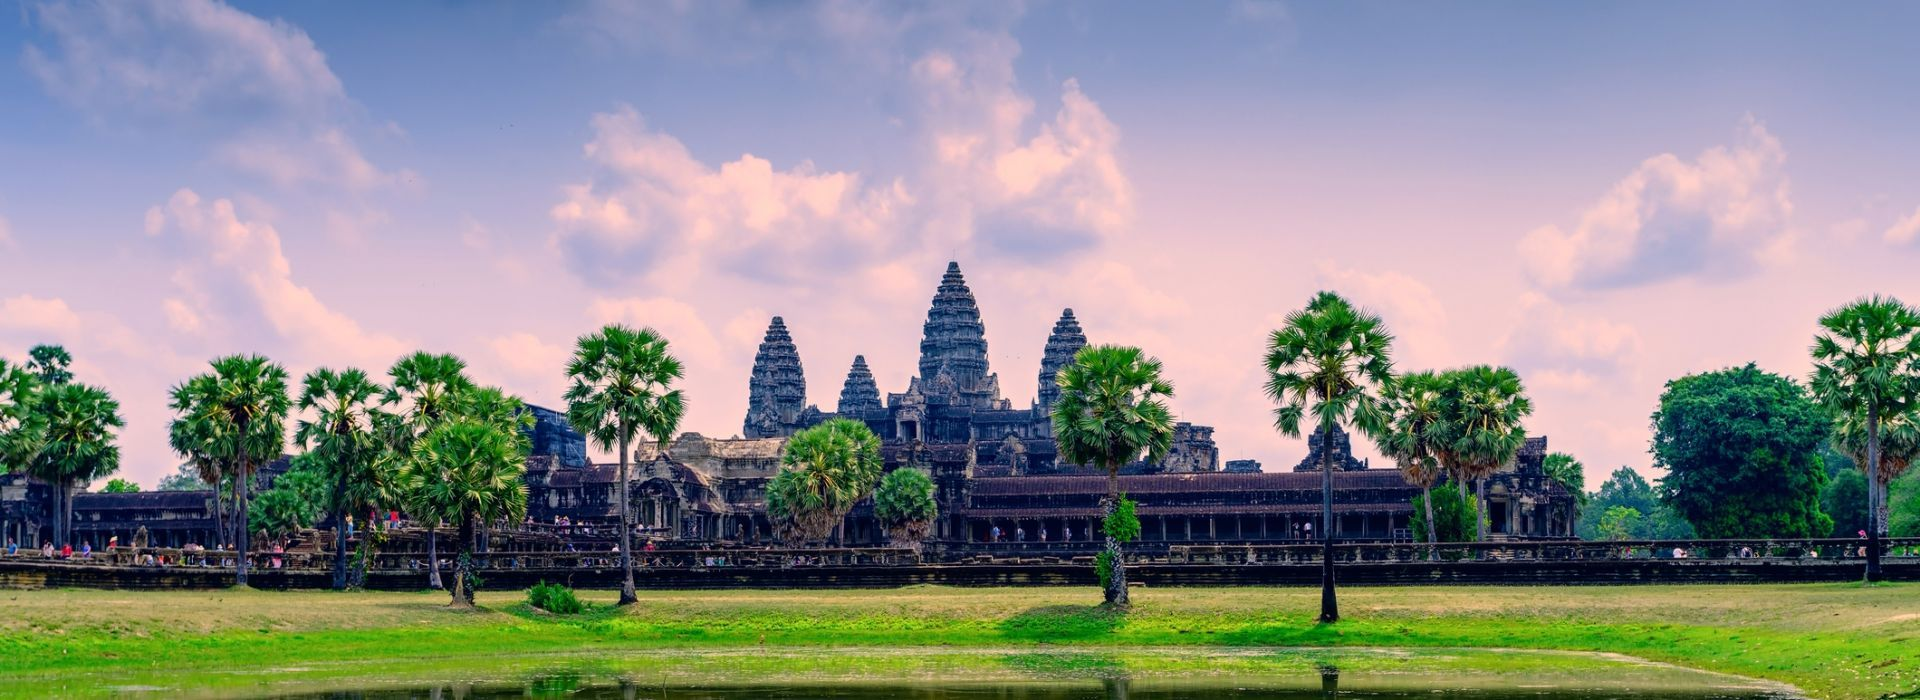 War sites Tours in Siem Reap